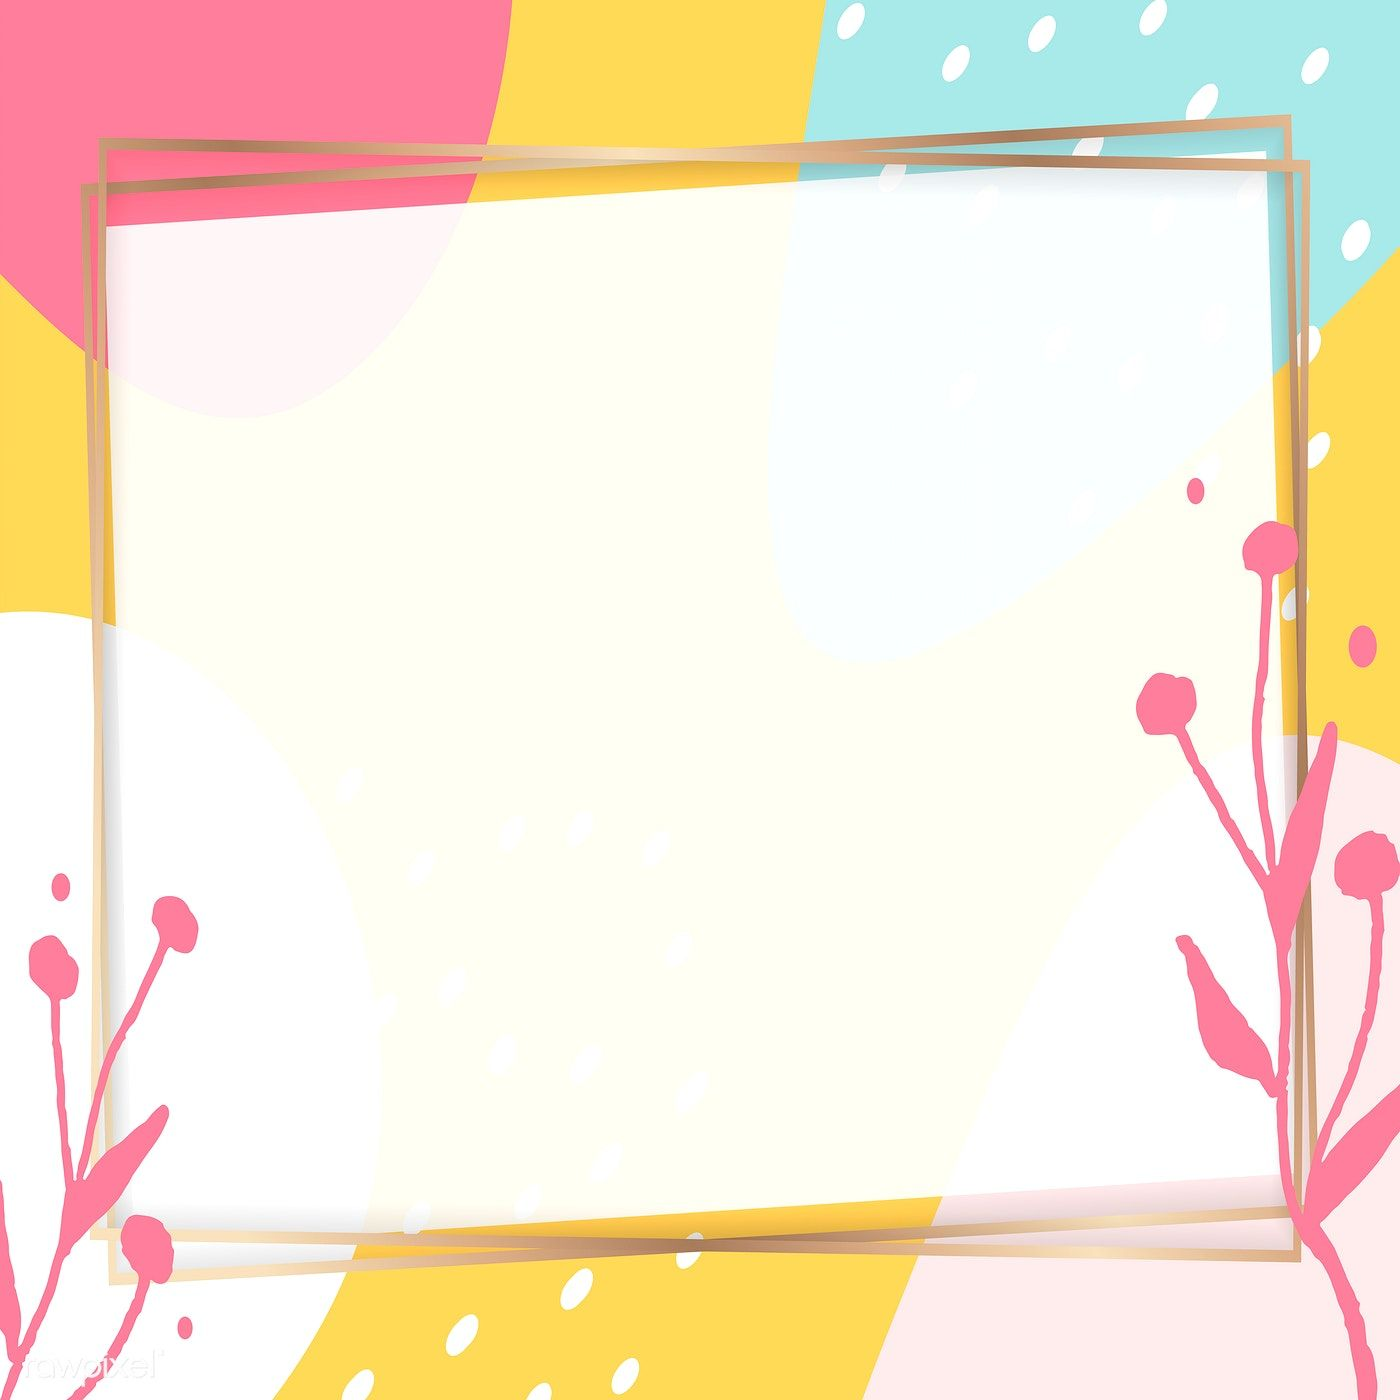 Download Premium Vector Of Square Golden Frame On A Colorful Memphis Flower Background Wallpaper Vector Background Pattern Background Patterns